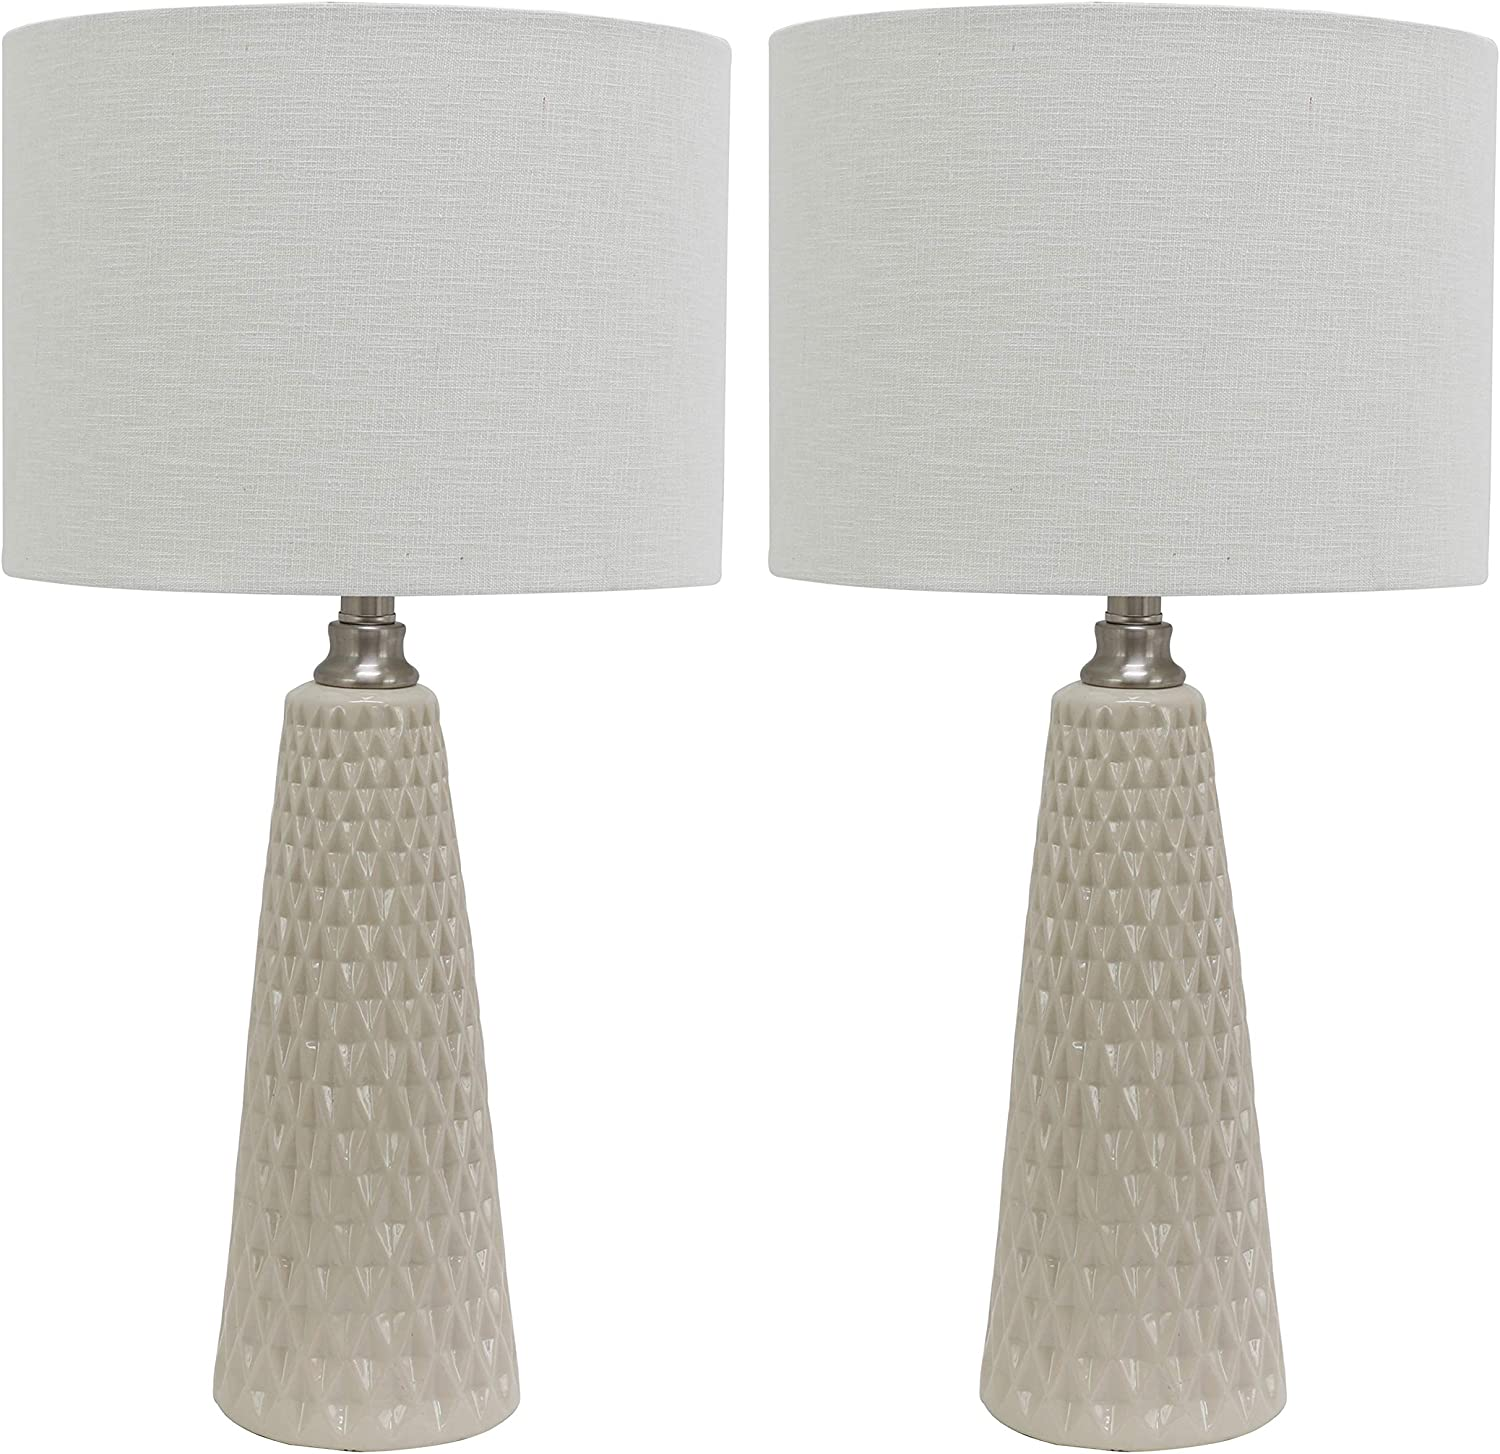 Decor Therapy MP1631 Set of Two Jameson Textured Ceramic Table Lamps, Ivory